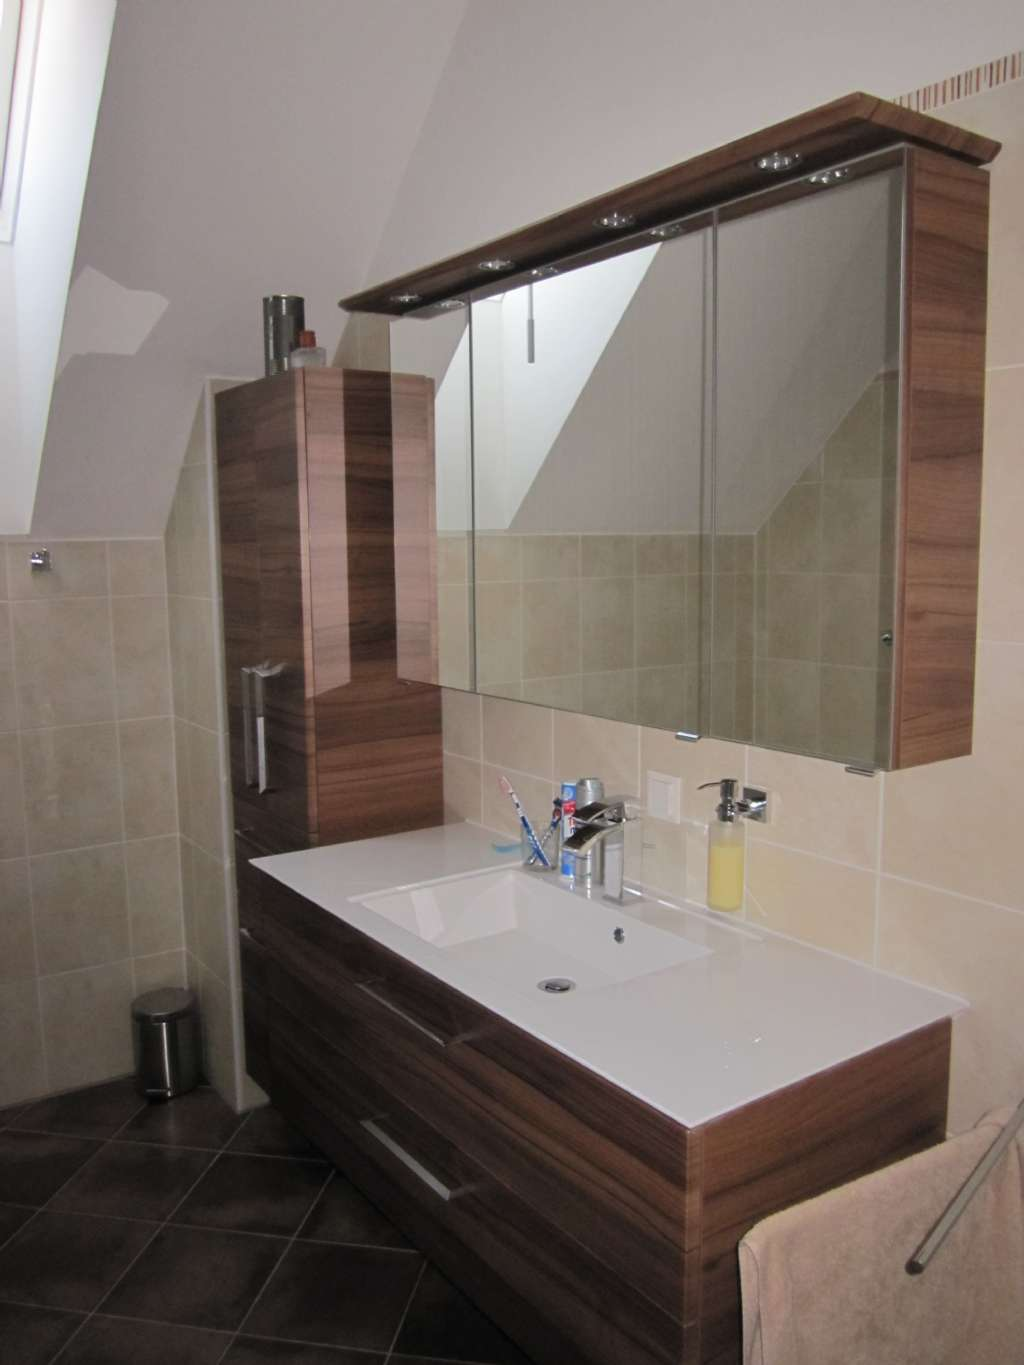 badezimmer welche fliesenfarben forum auf. Black Bedroom Furniture Sets. Home Design Ideas